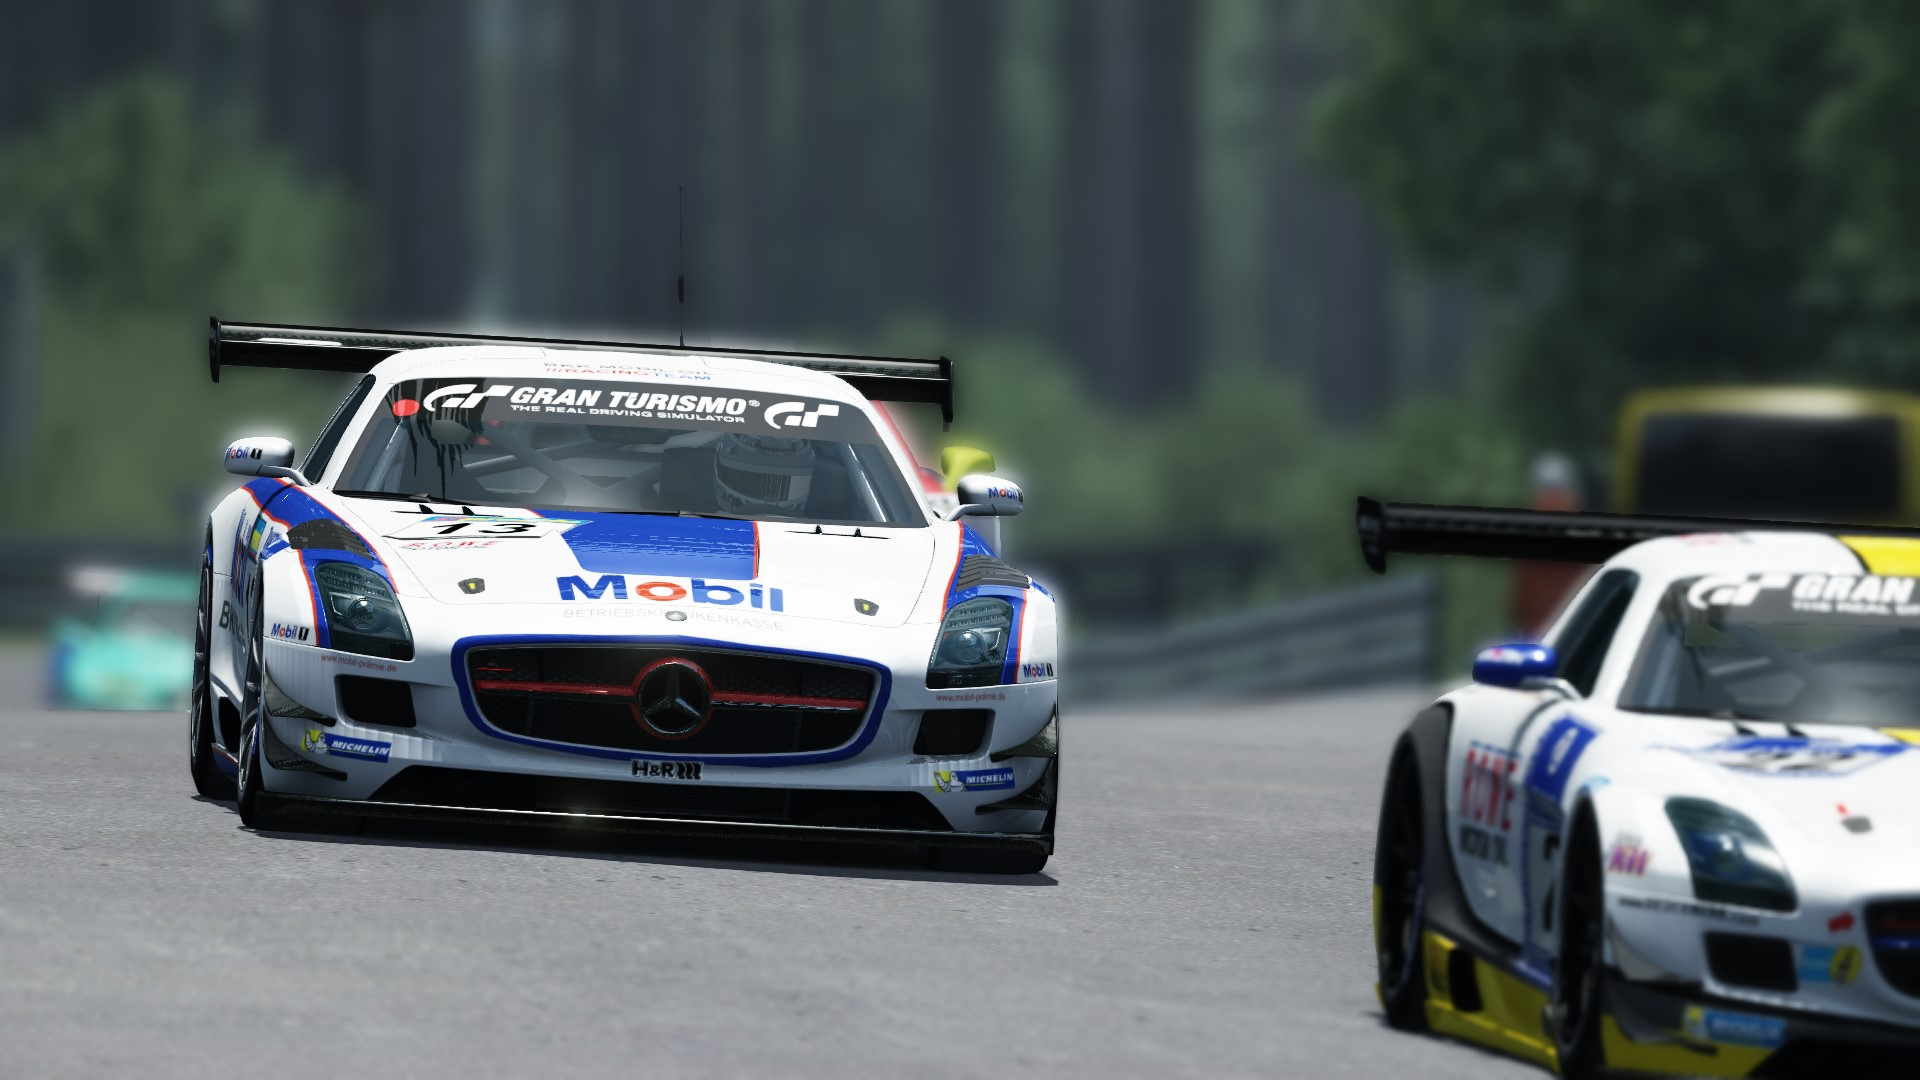 Screenshot_mercedes_sls_gt3_ks_nordschleife_29-3-115-19-0-58.jpg